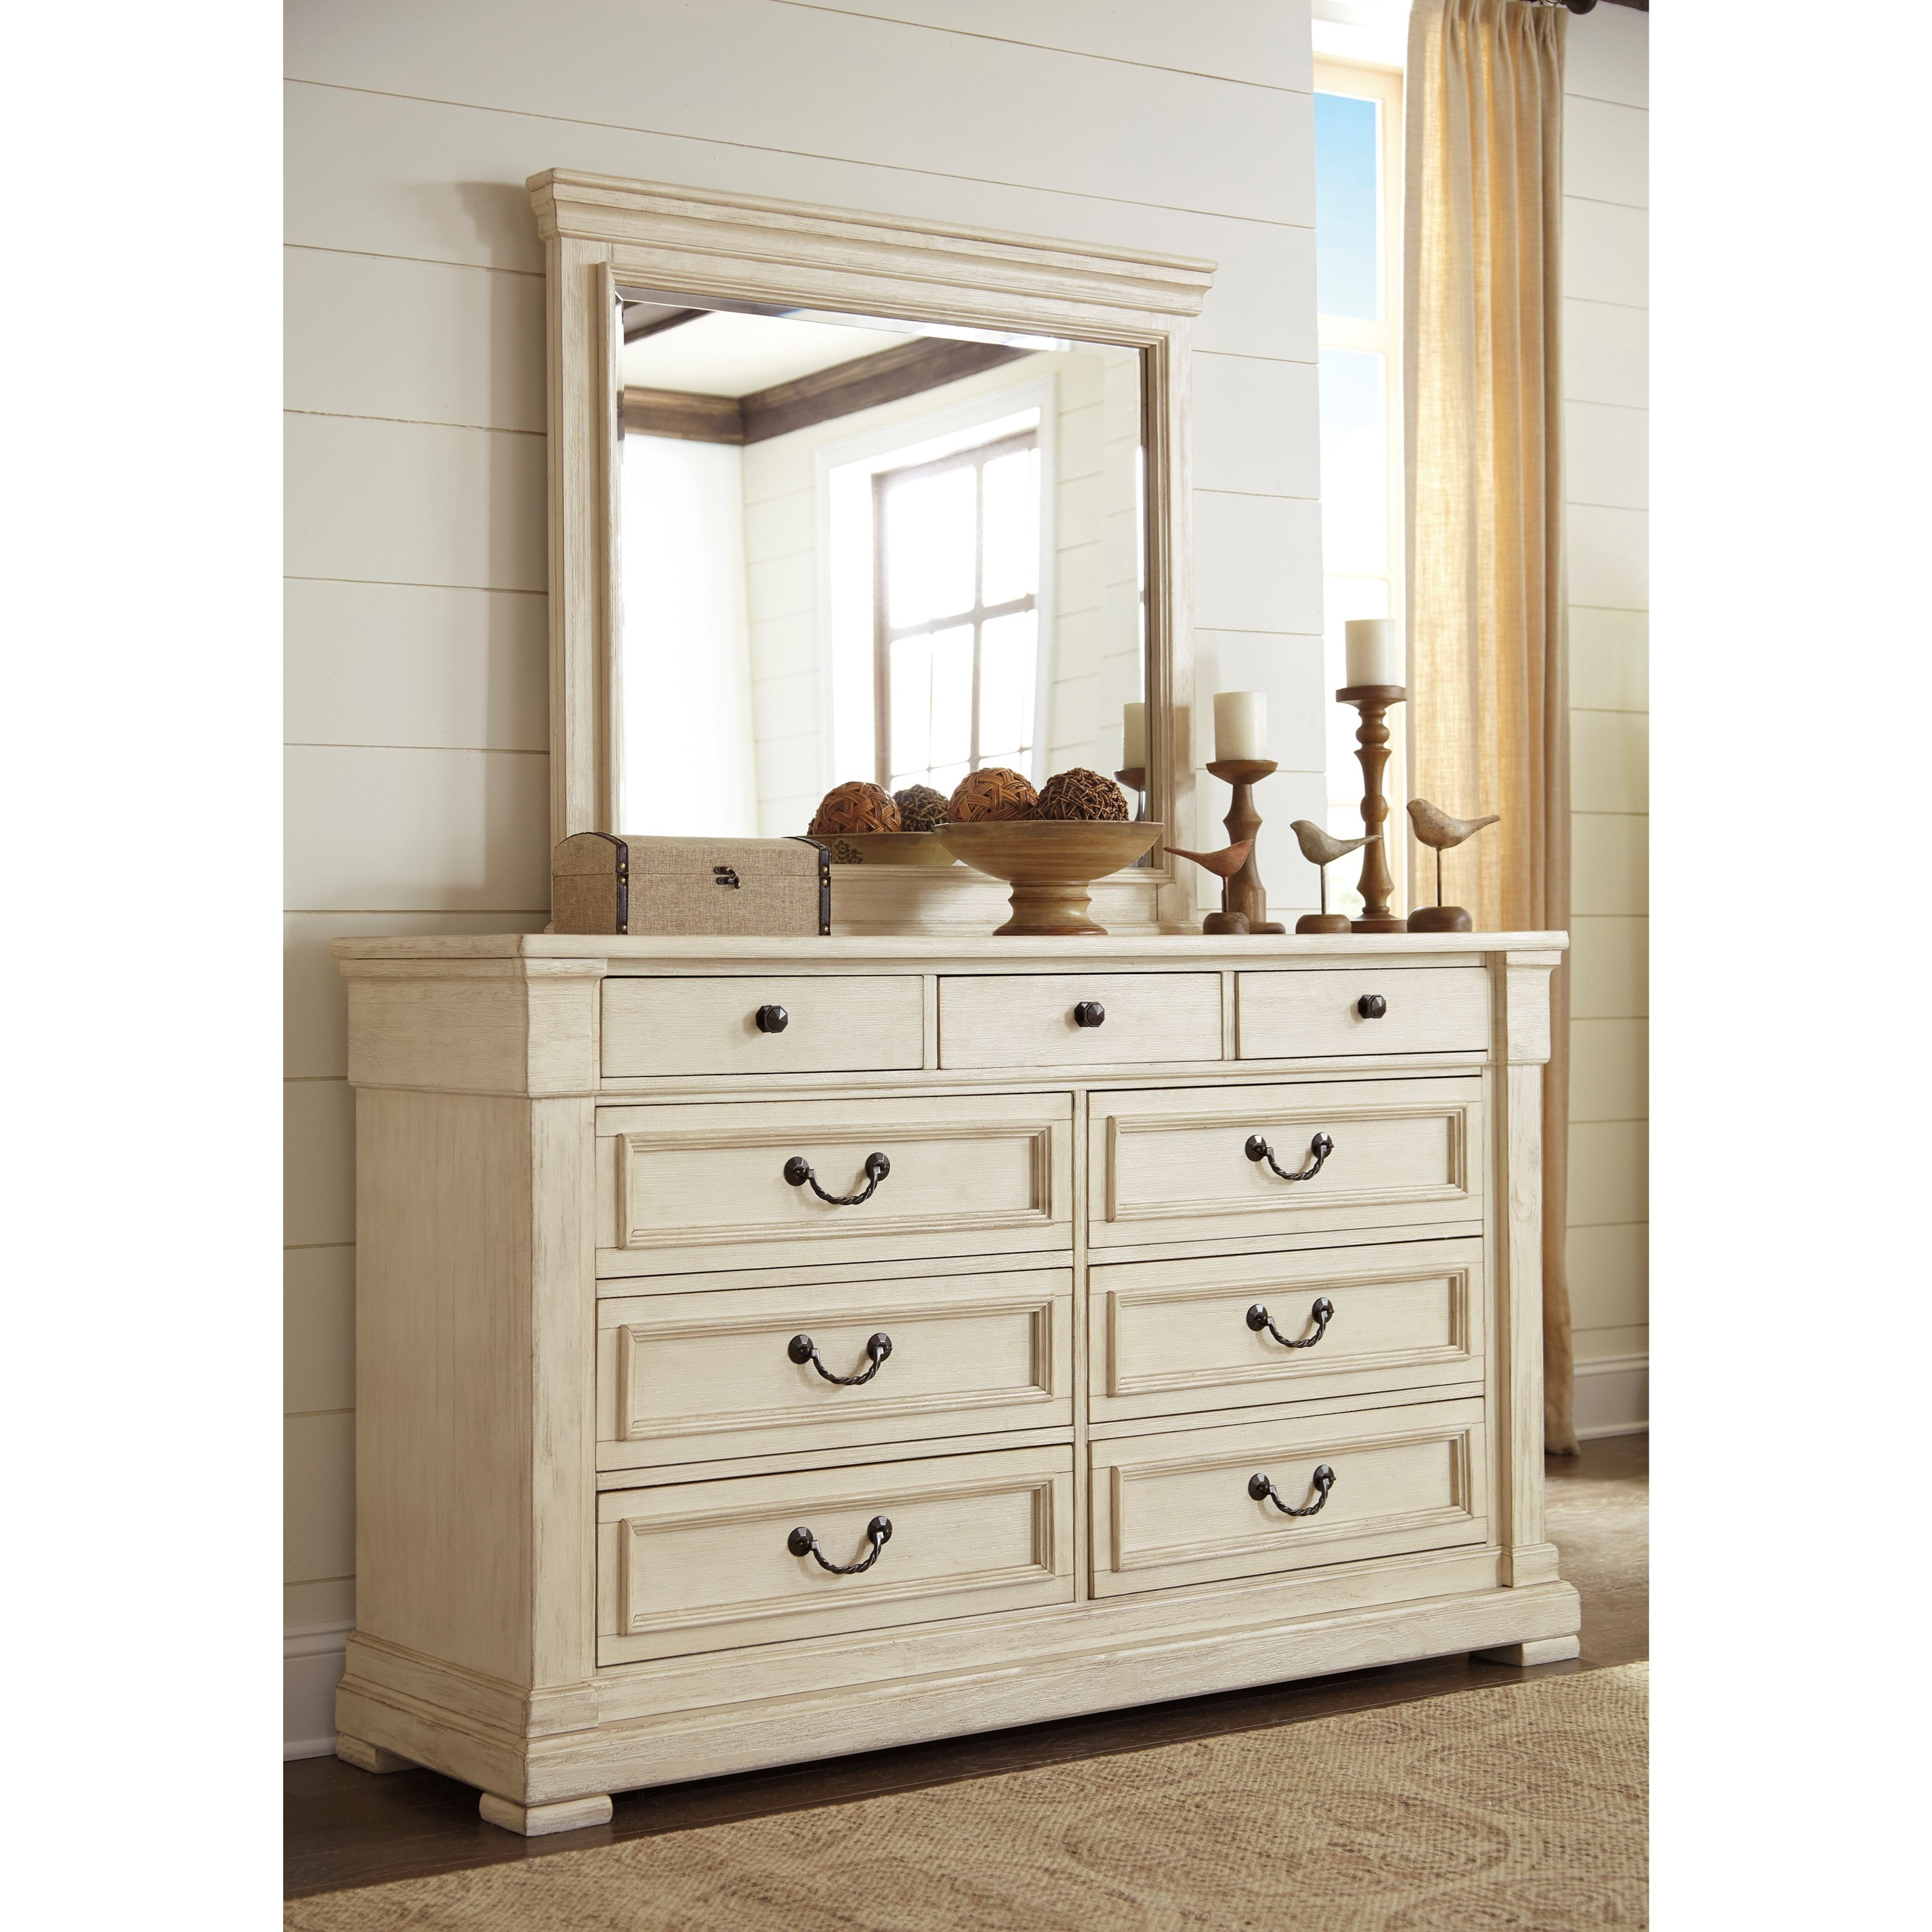 Signature Design by Ashley Bolanburg Bedroom Mirror Household Furniture D